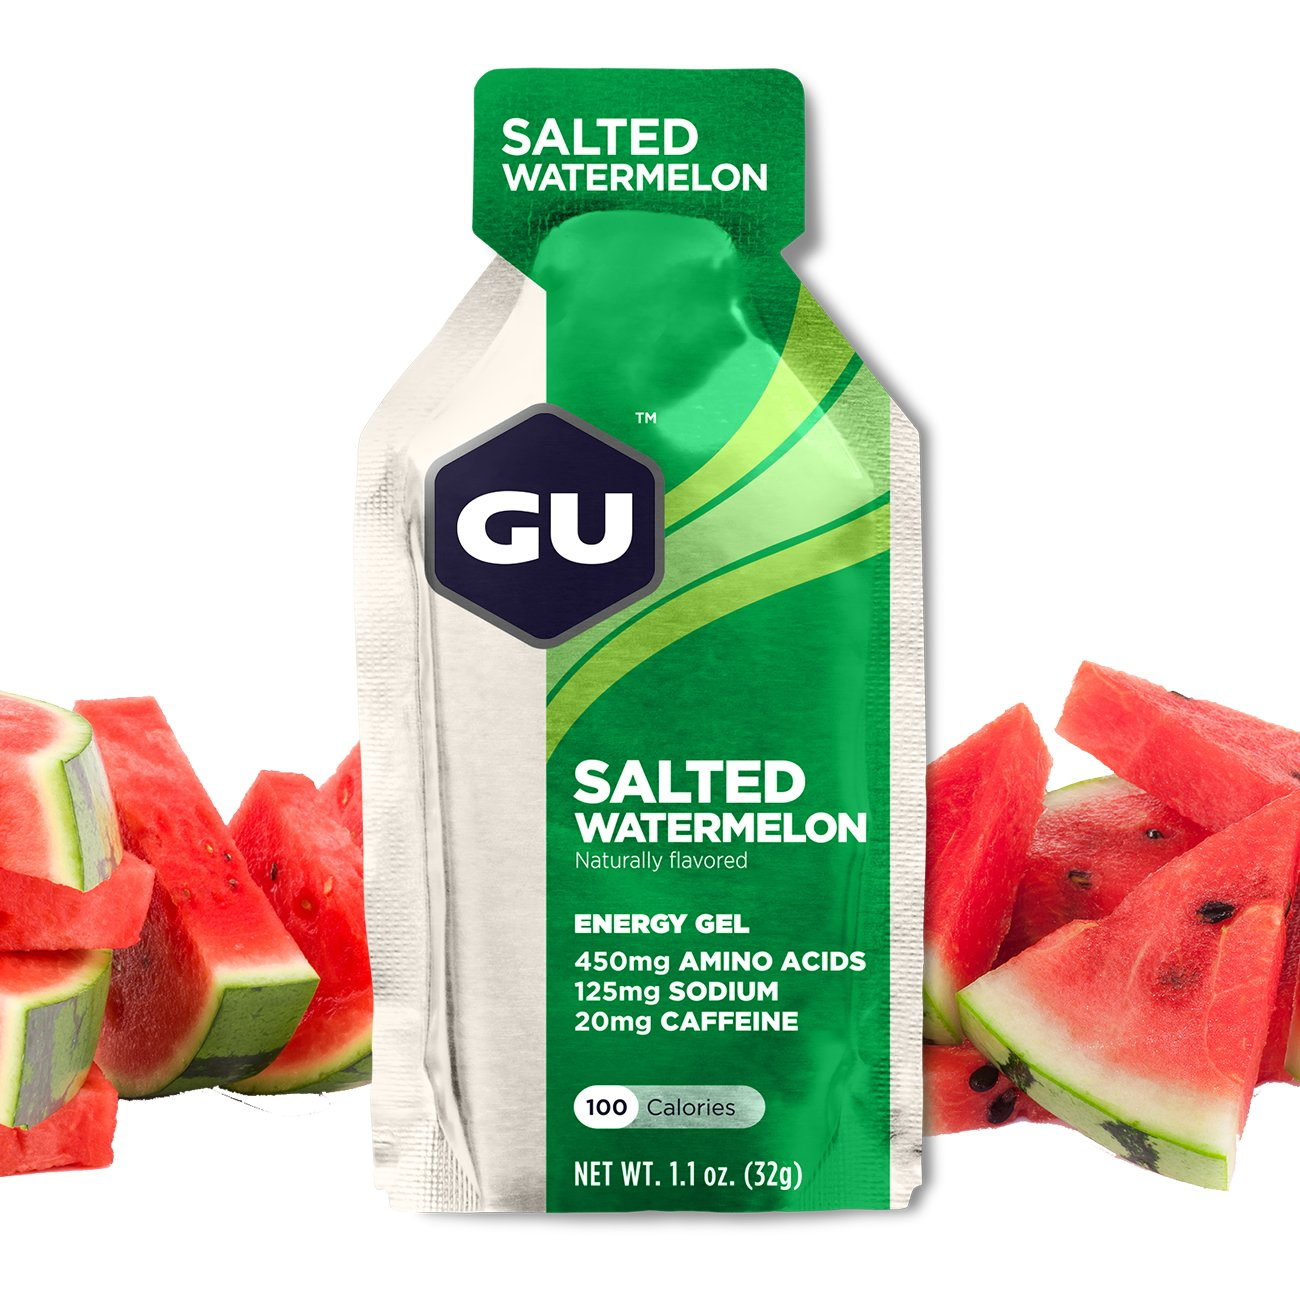 GU Energy Original Sports Nutrition Energy Gel, Salted Watermelon, 8-Count